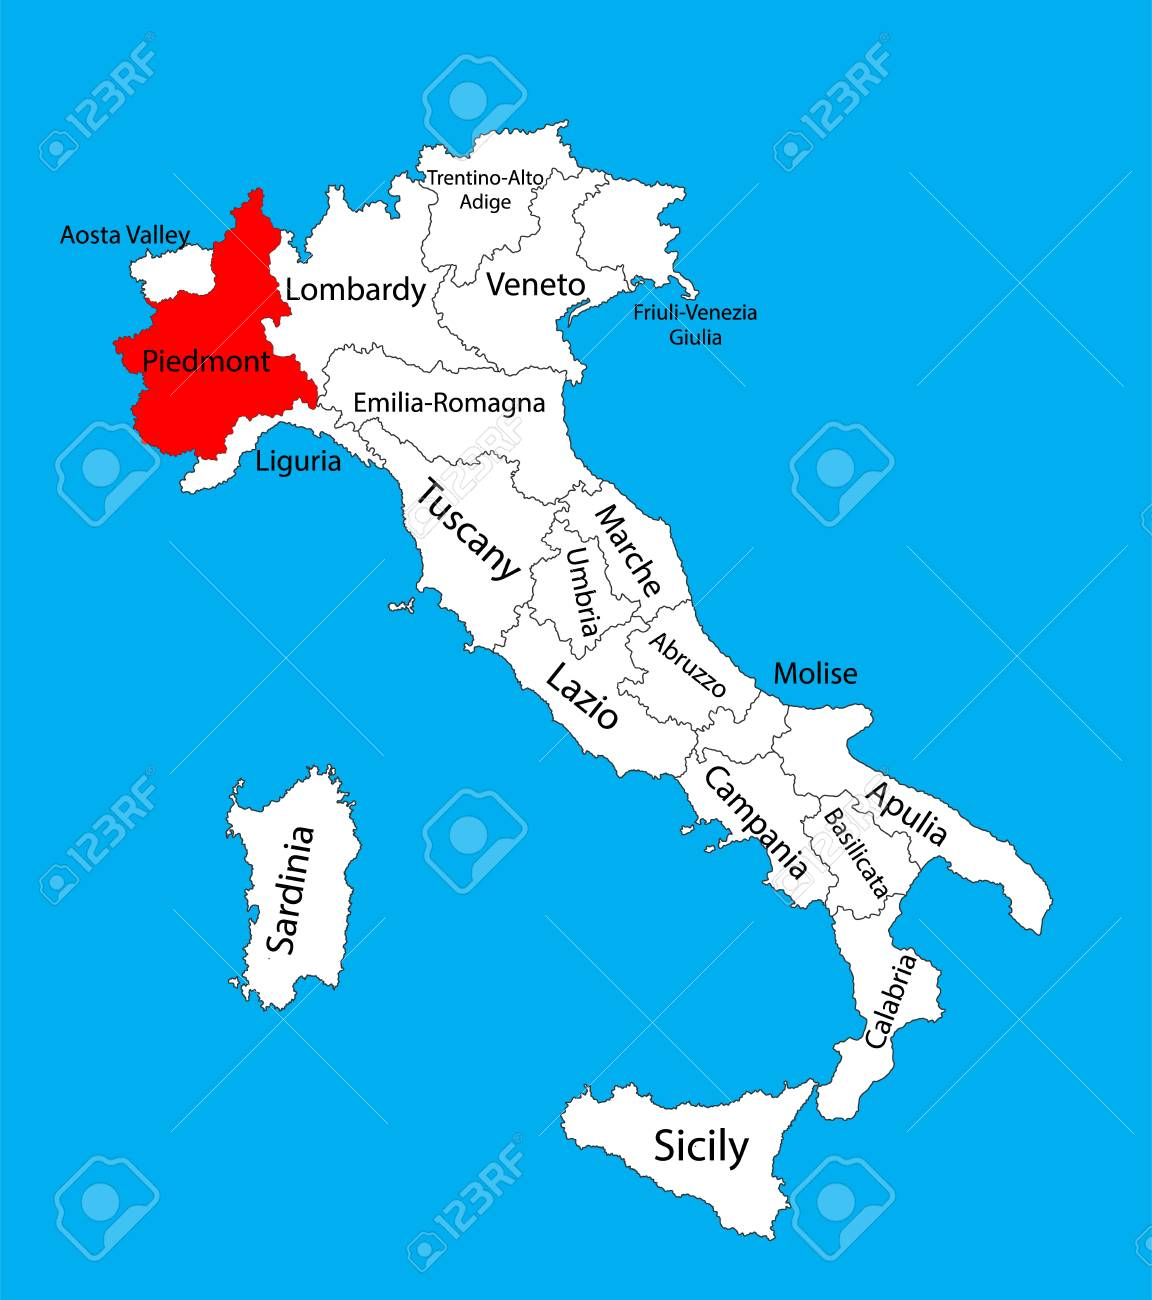 Piedmont Piemonte Italy Vector Map Illustration Isolated On